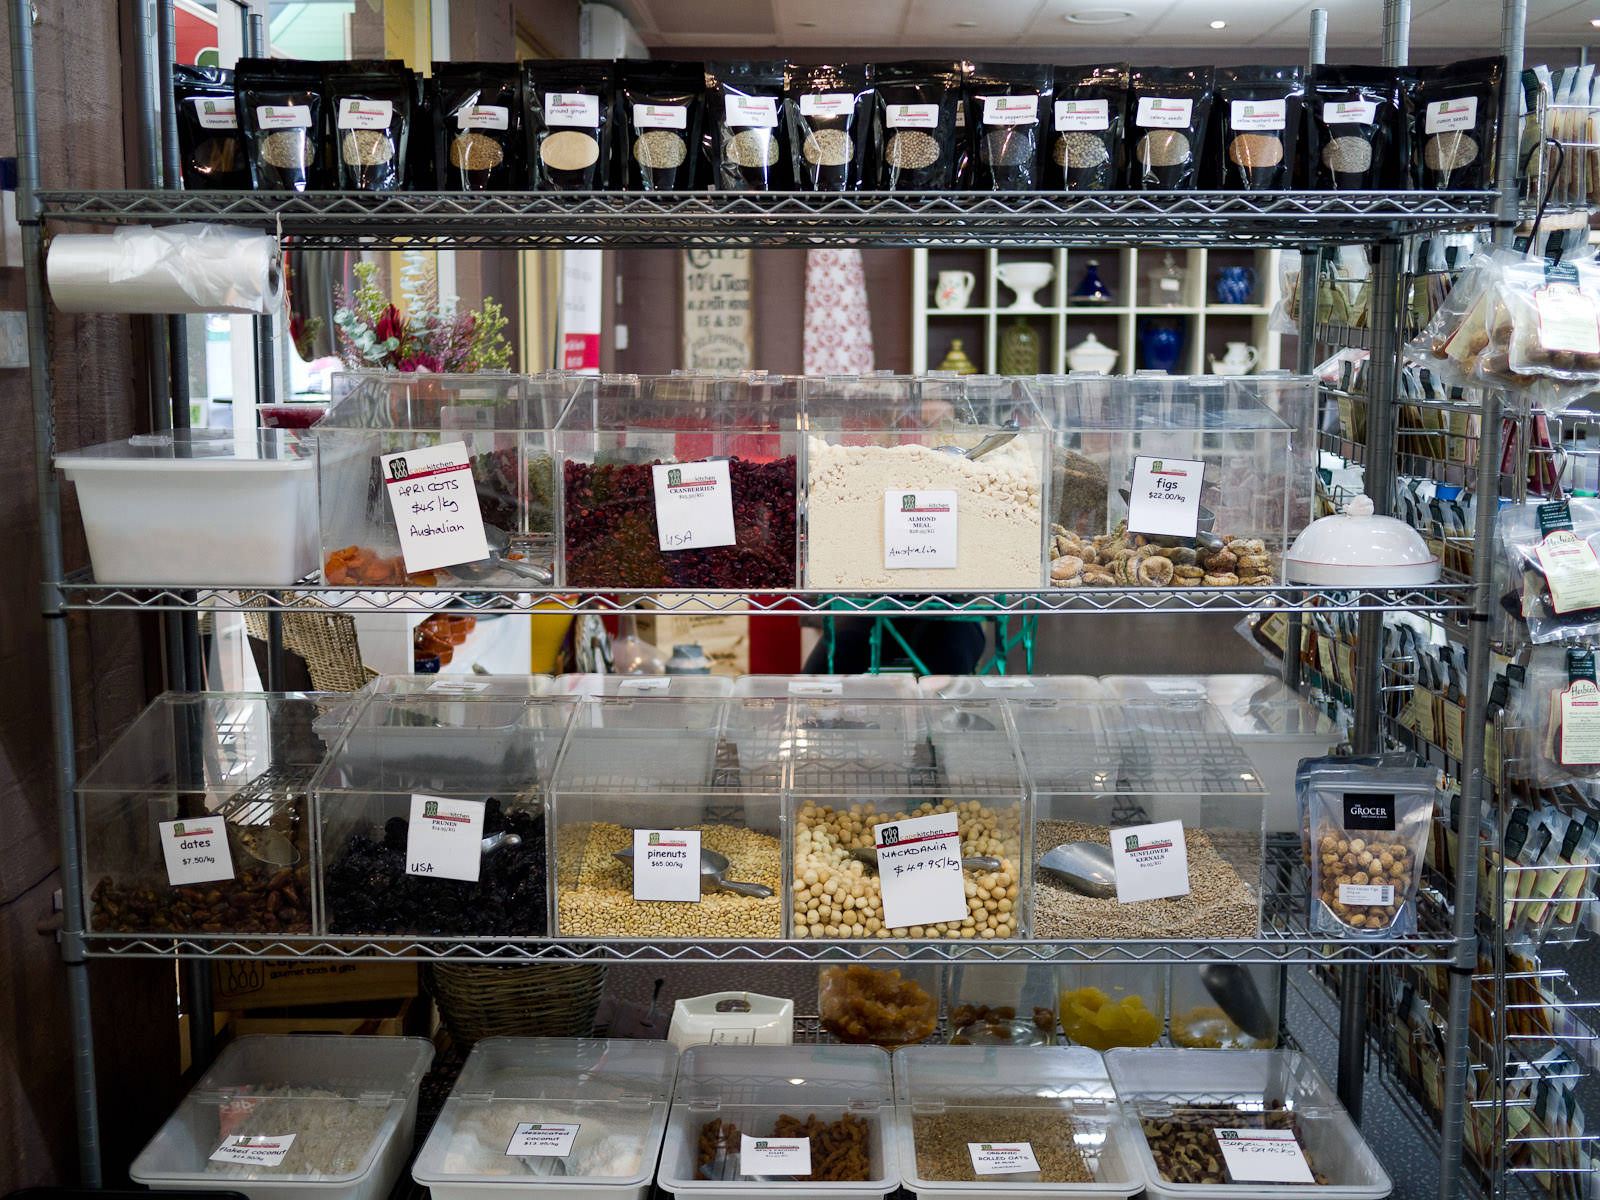 Dried spices, nuts and fruits